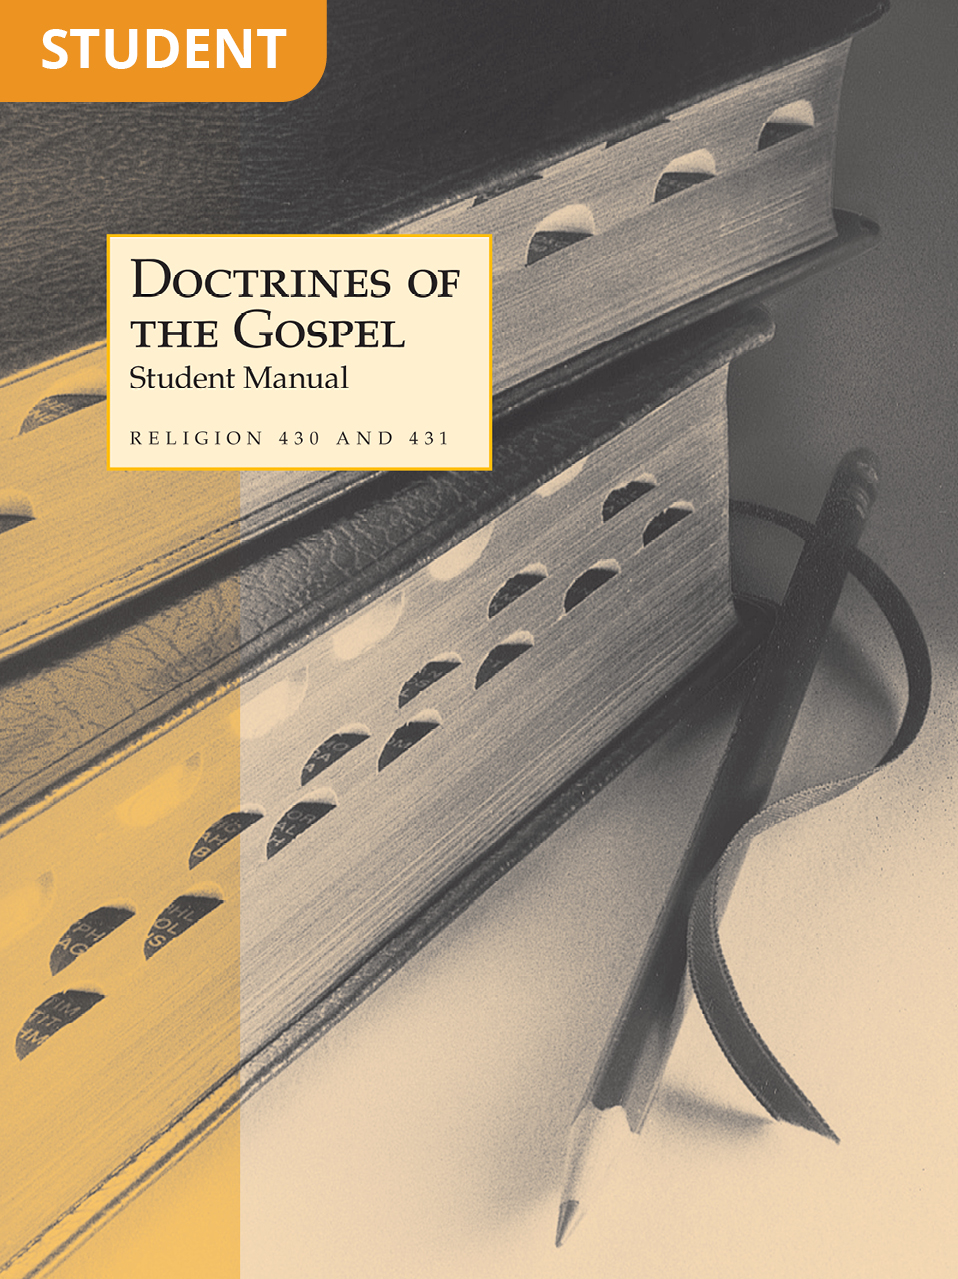 Doctrines of the Gospel Student Manual (Rel 430–431)